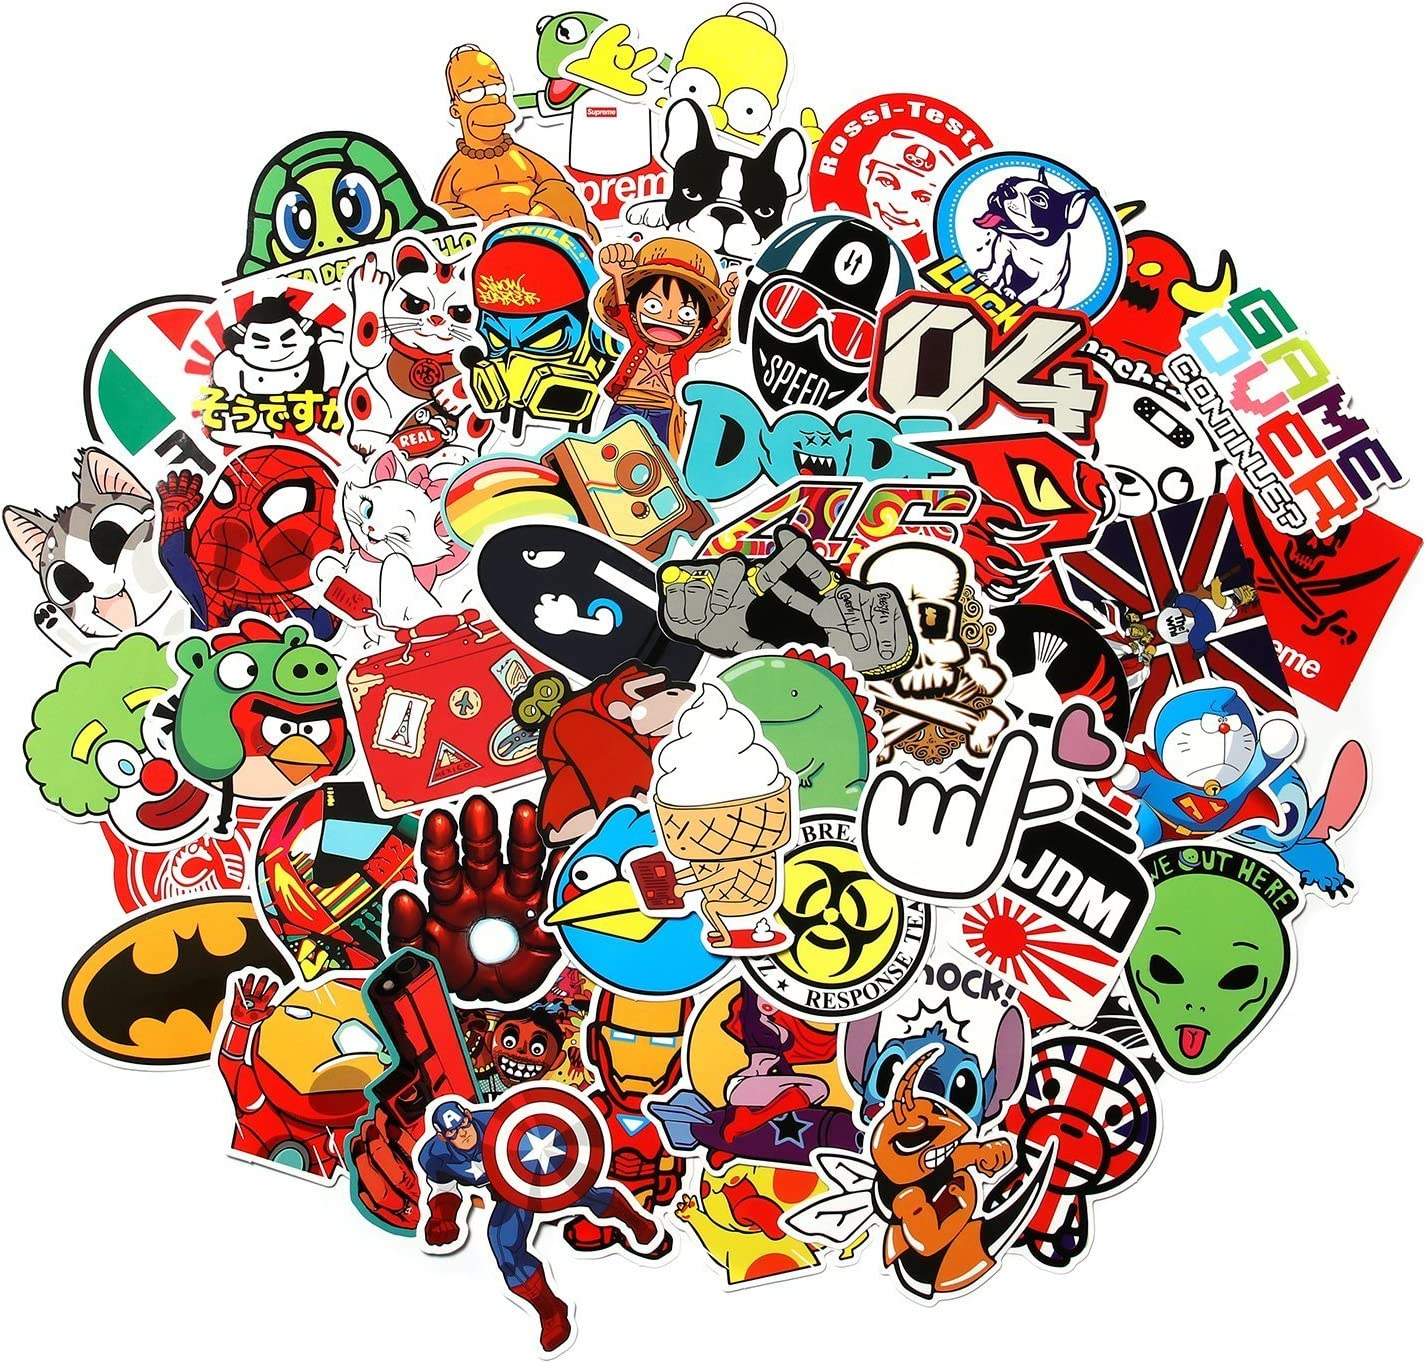 CHNLML Love Sticker Pack 100-Pcs,Cool Sticker Decals Vinyls for Laptop,Kids,Cars,Motorcycle,Bicycle,Skateboard Luggage,Bumper Stickers Hippie Decals Bomb Waterproof(Not Random) (H)